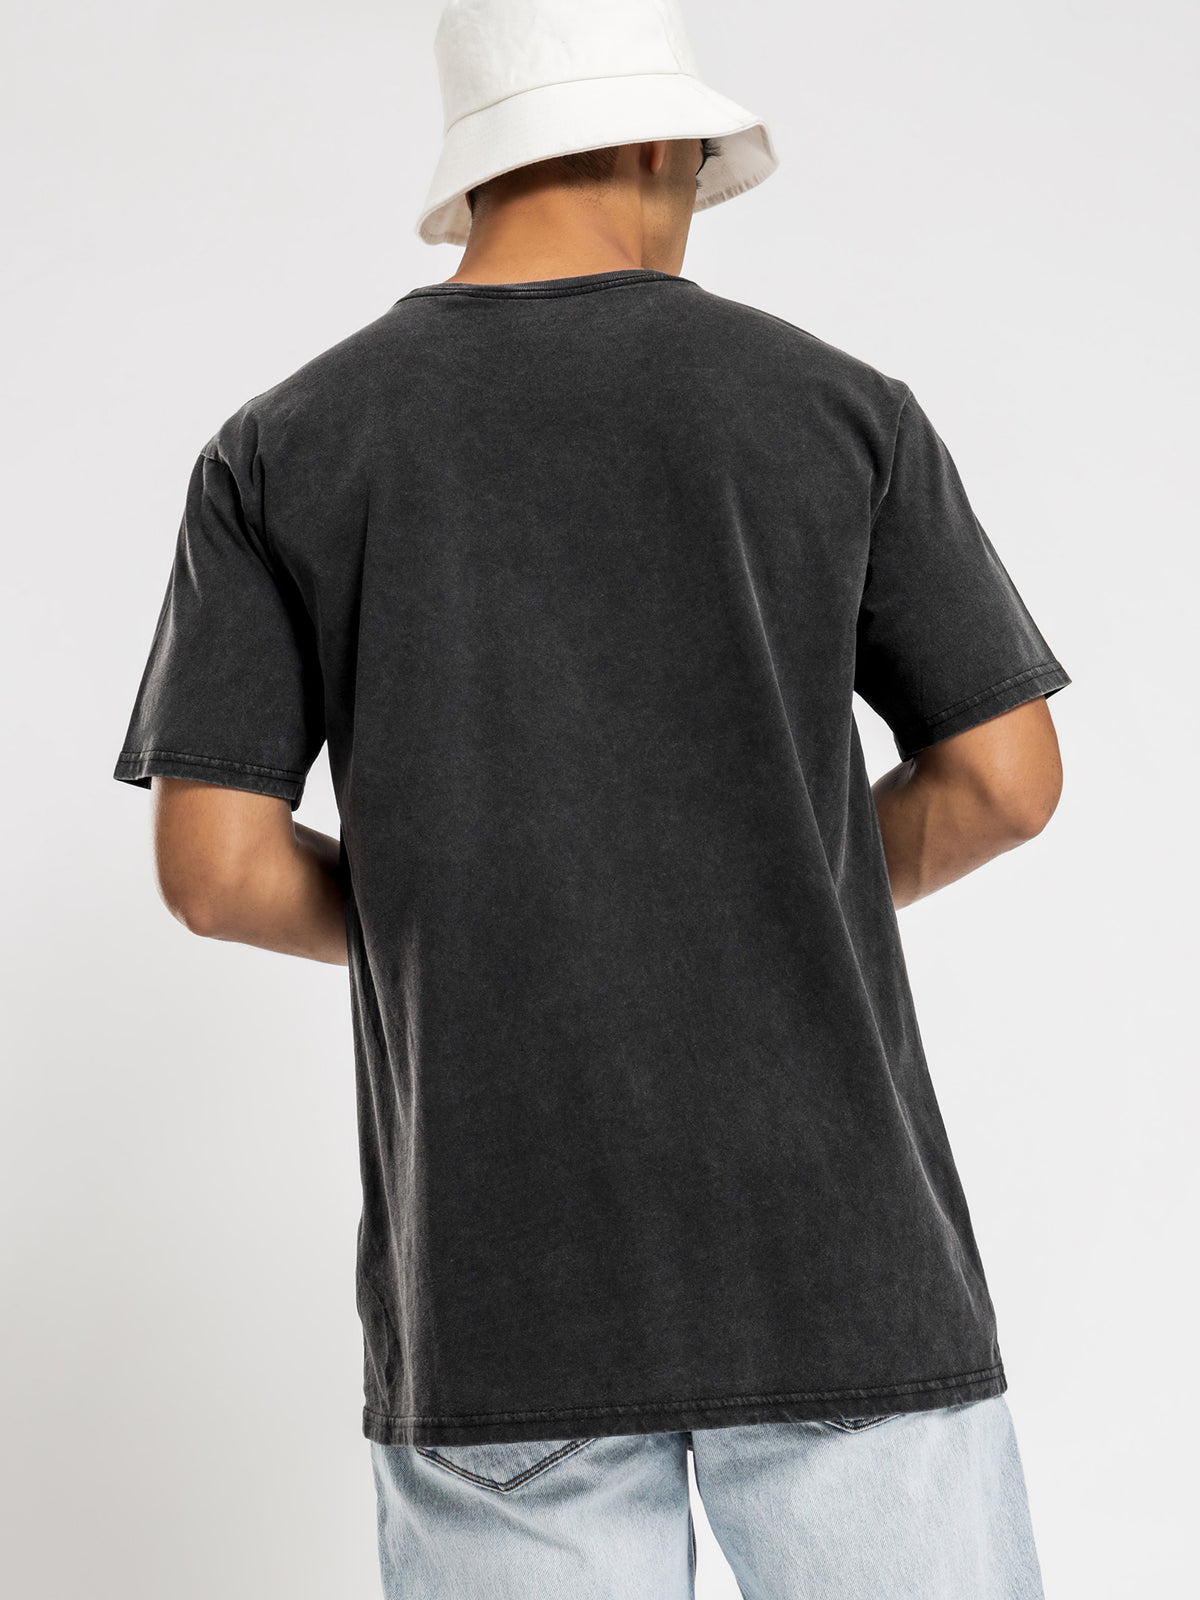 Metal T-Shirt in Washed Black